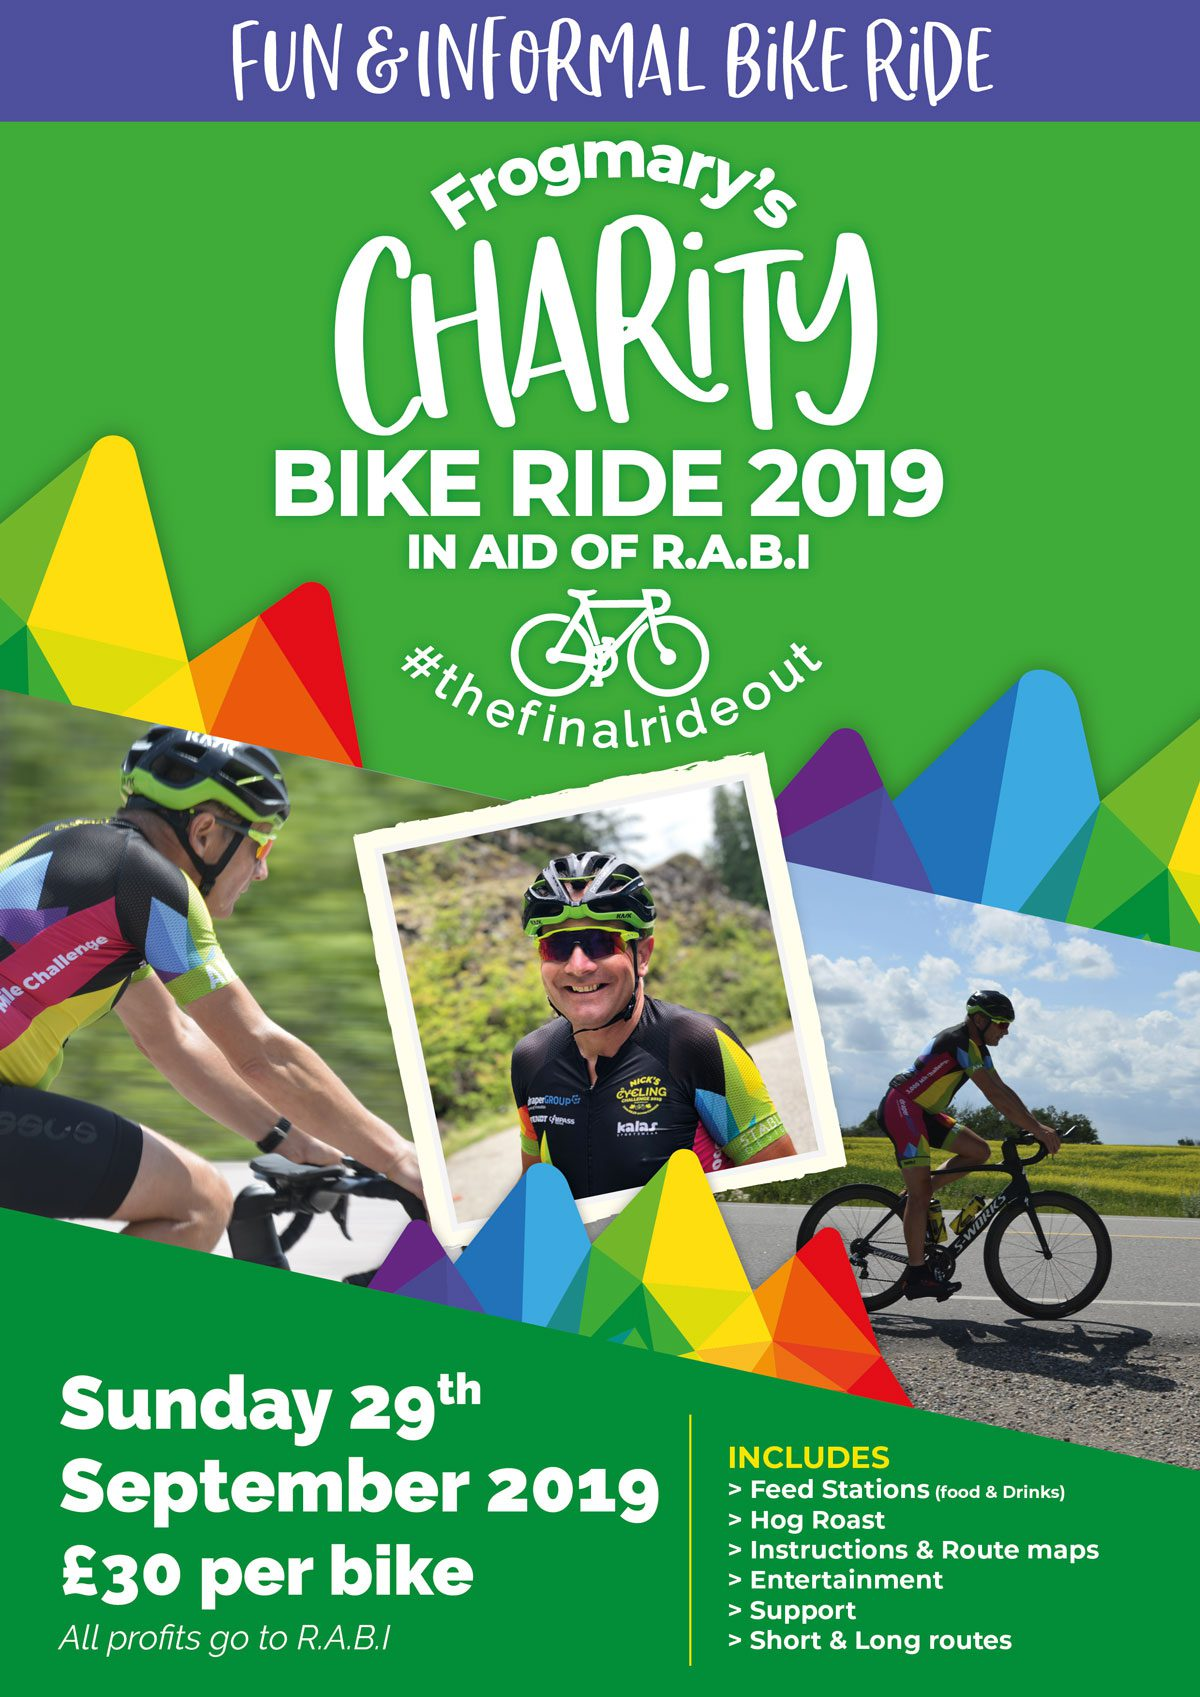 Nick's Cycling Challenge Charity Bike Ride